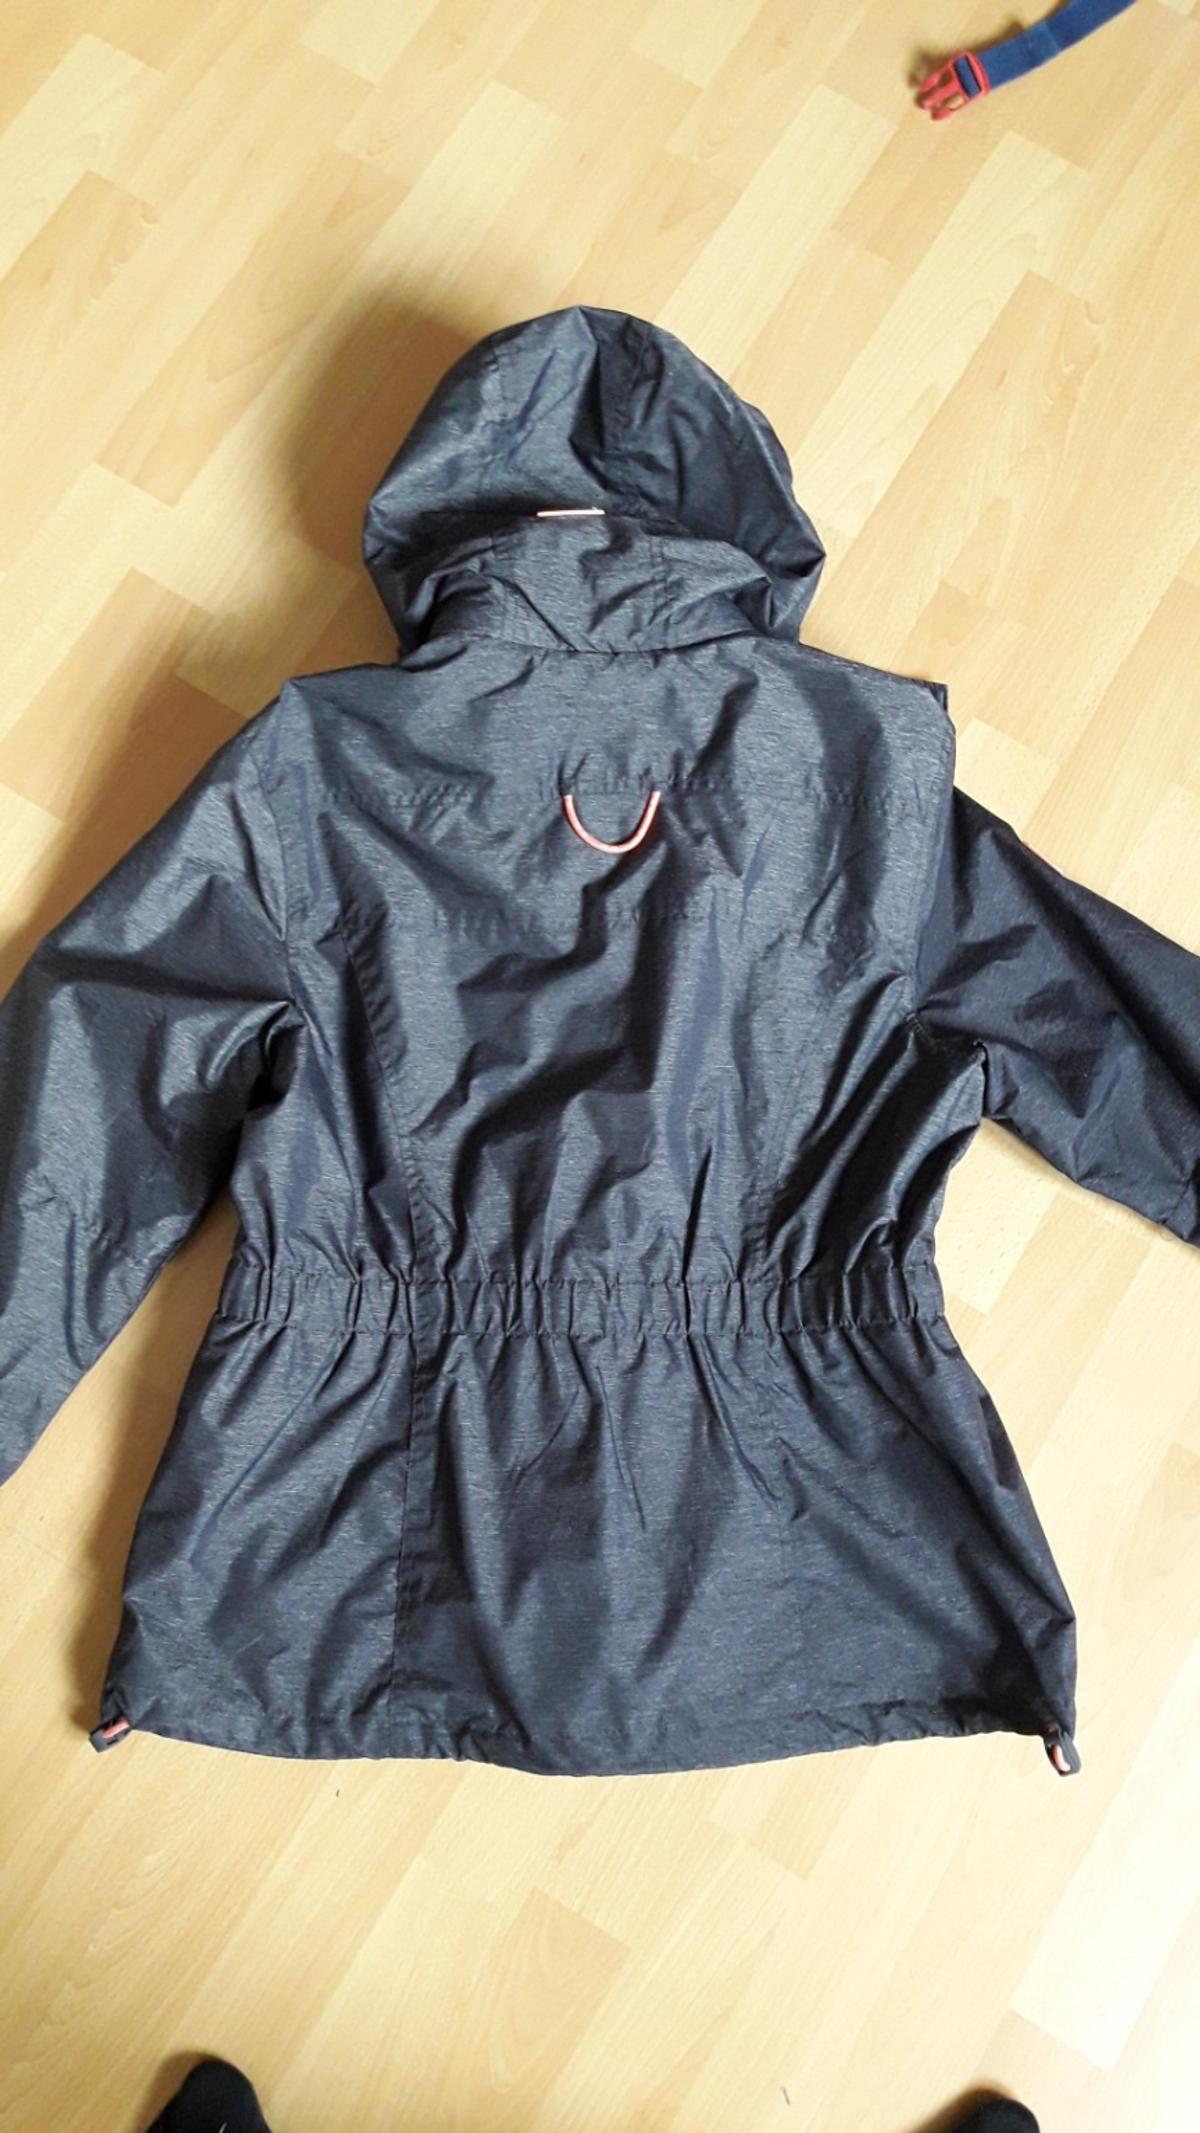 38 In 64658 Fürth For Jpn Superdry 40 Xl Damen Jacke gmIY6bf7vy